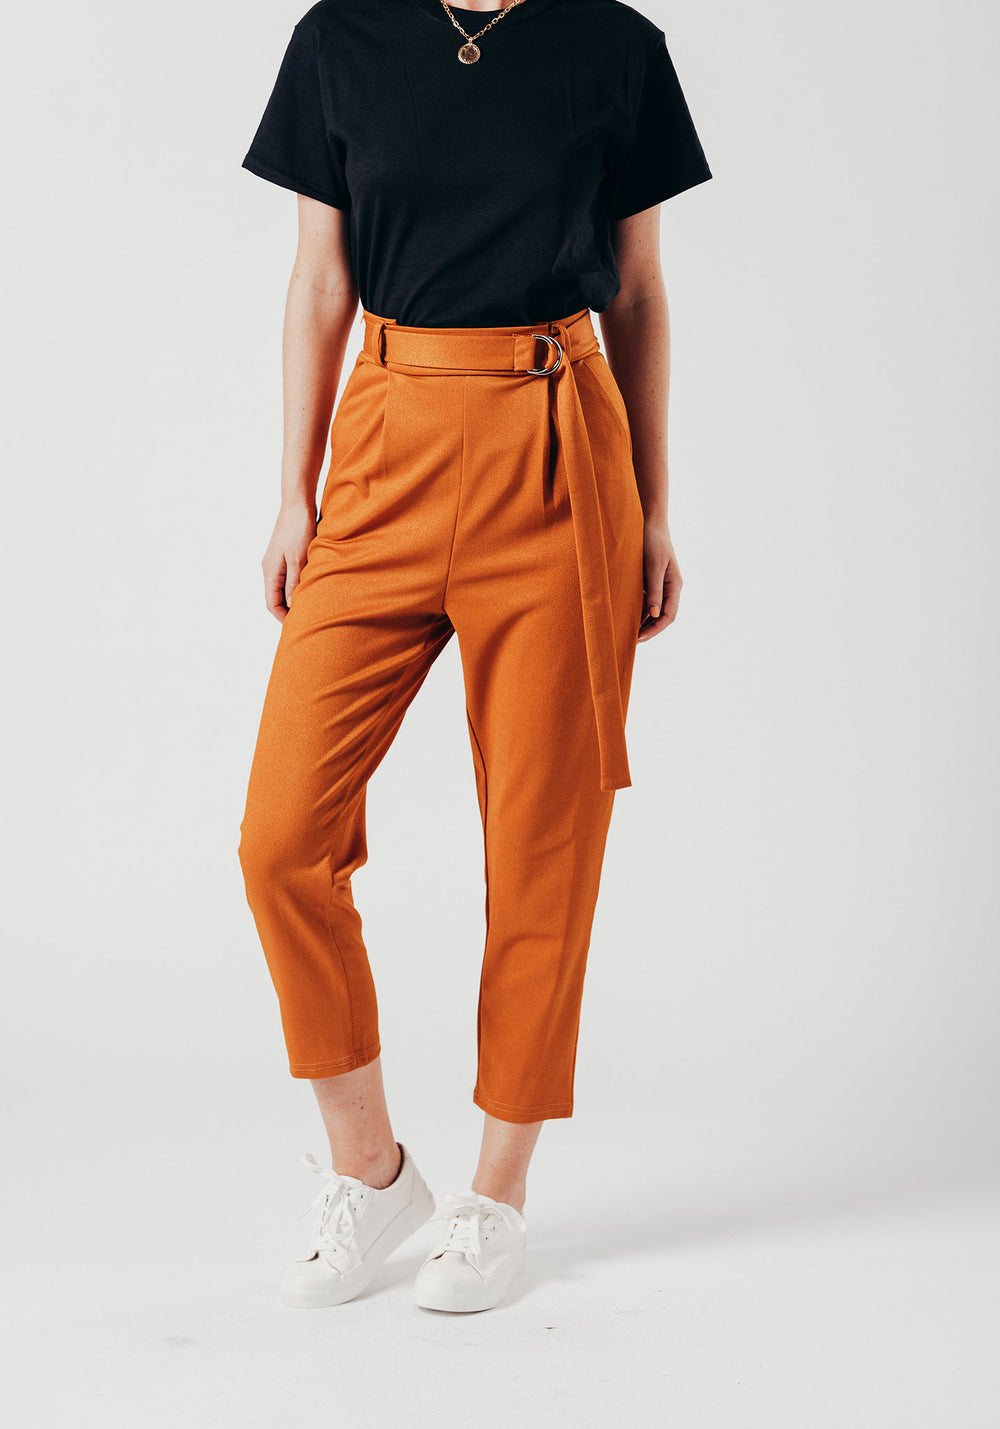 Yellow High Waist Trousers with a belt